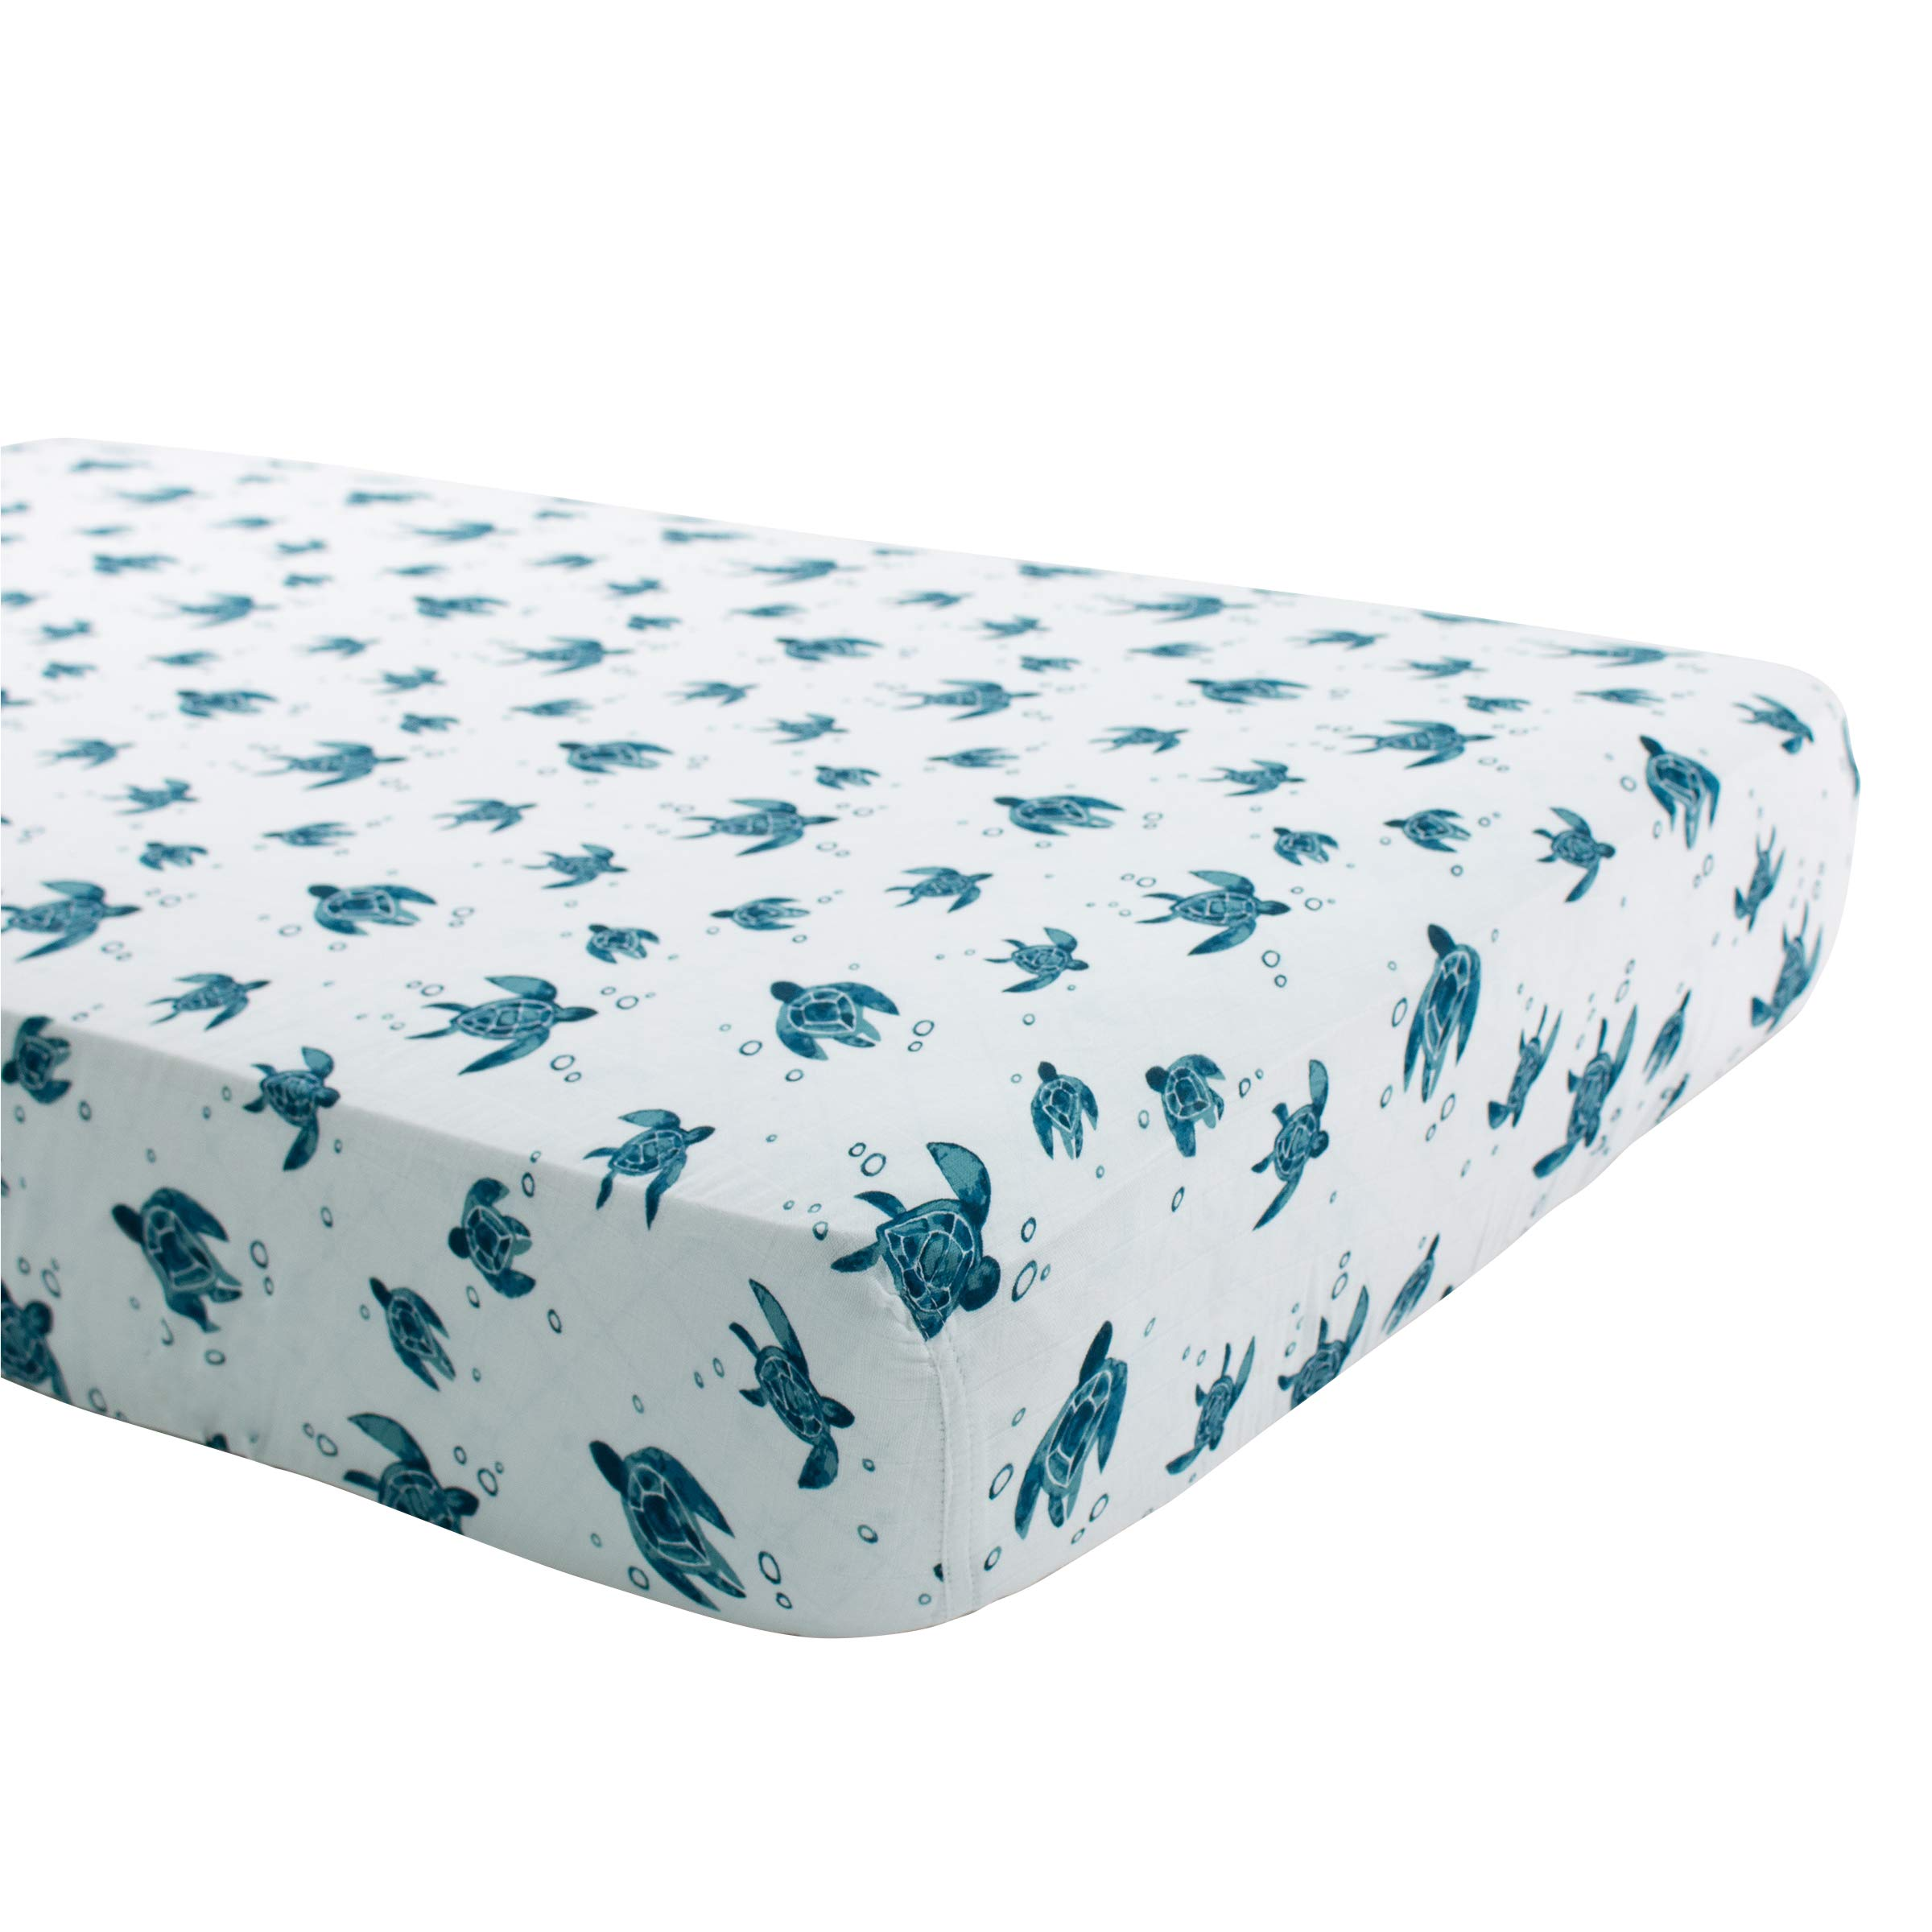 Bebe au Lait Oh So Soft Muslin Crib Sheet, Sea Turtle by Bebe au Lait